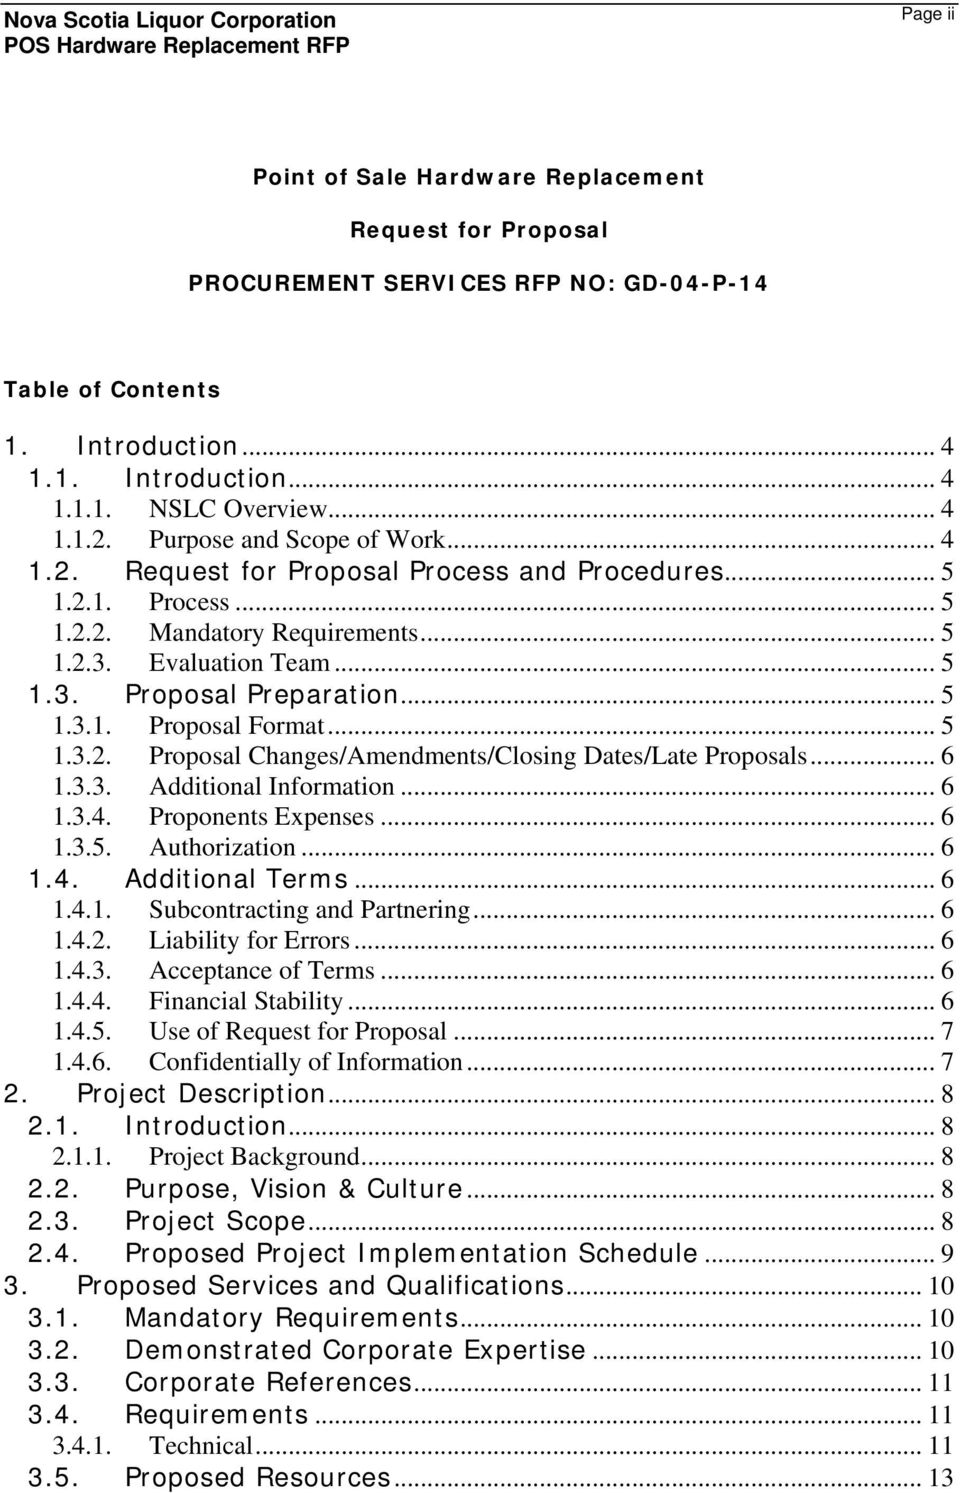 .. 5 1.3.1. Proposal Format... 5 1.3.2. Proposal Changes/Amendments/Closing Dates/Late Proposals... 6 1.3.3. Additional Information... 6 1.3.4. Proponents Expenses... 6 1.3.5. Authorization... 6 1.4. Additional Terms.